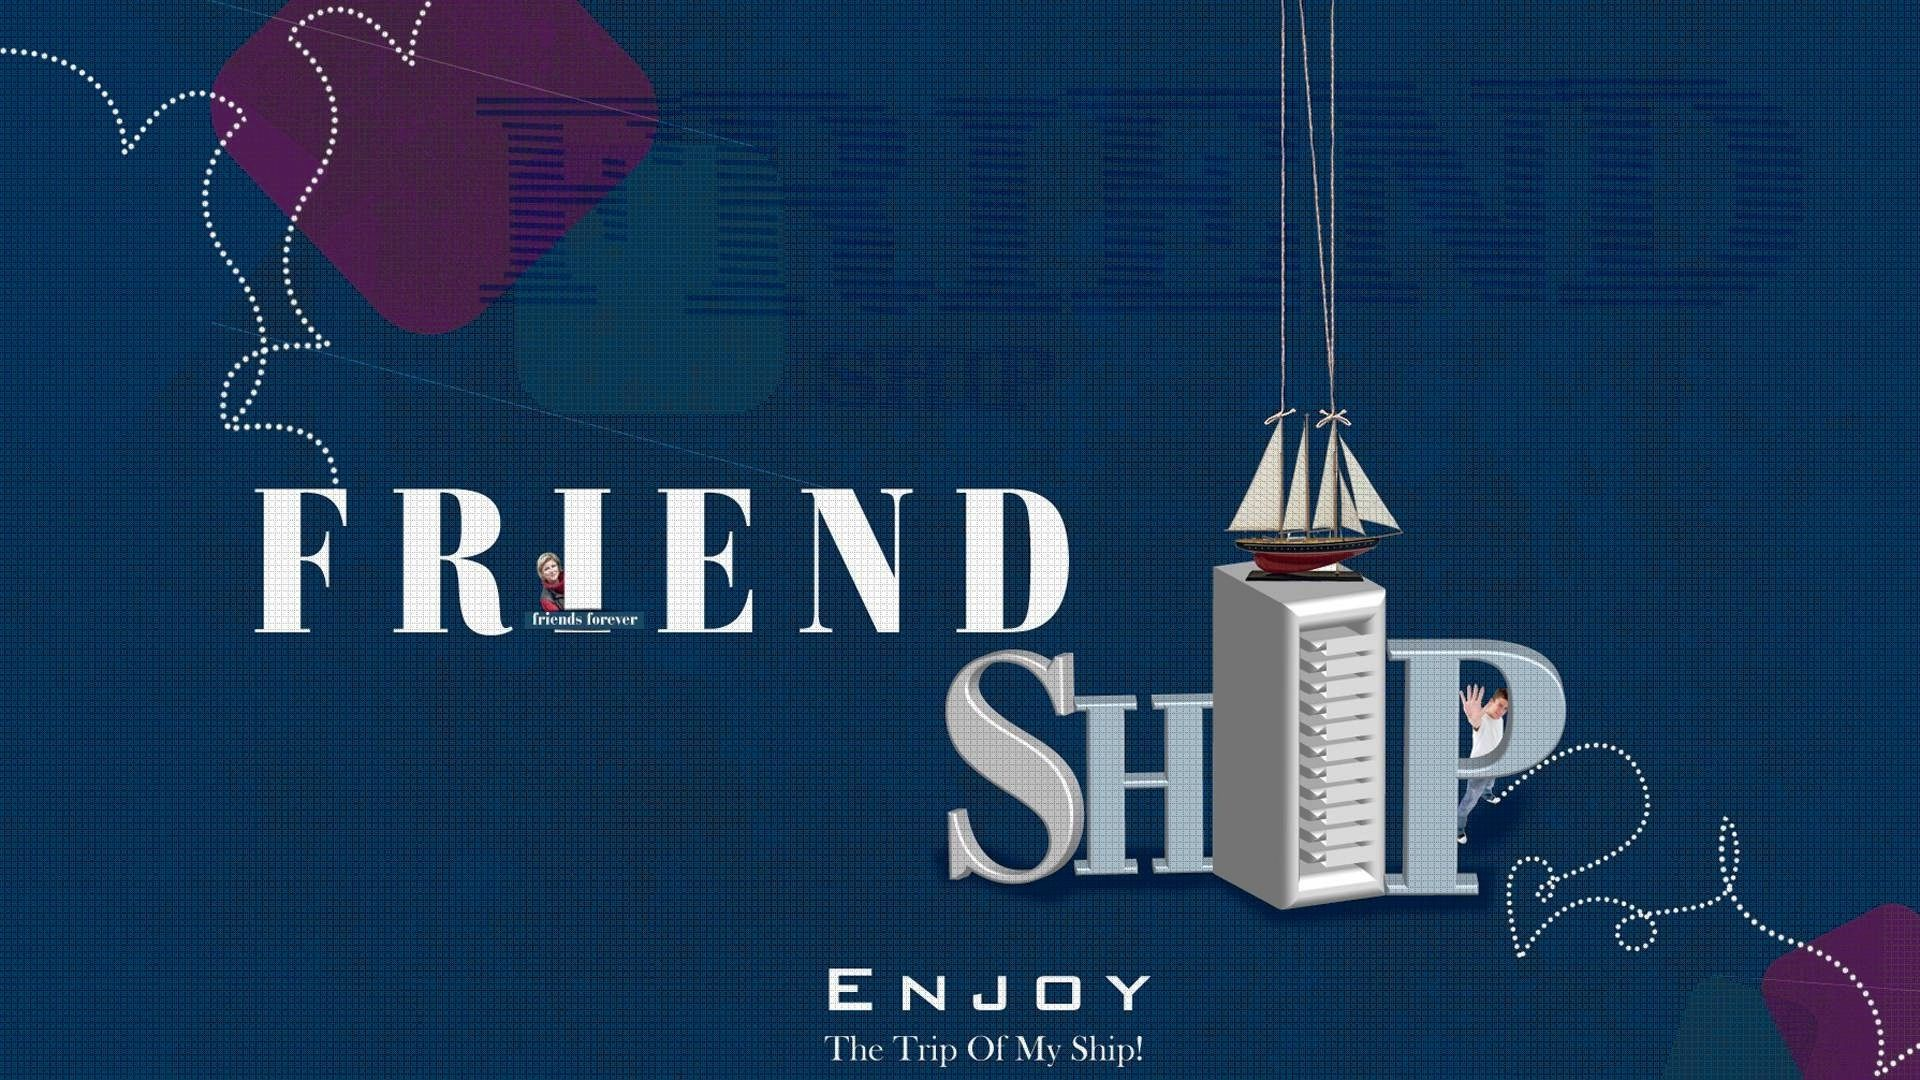 Friendship day best wishes nice 1920x1080 beautiful wallpaper friendship day best wishes nice 1920x1080 altavistaventures Images